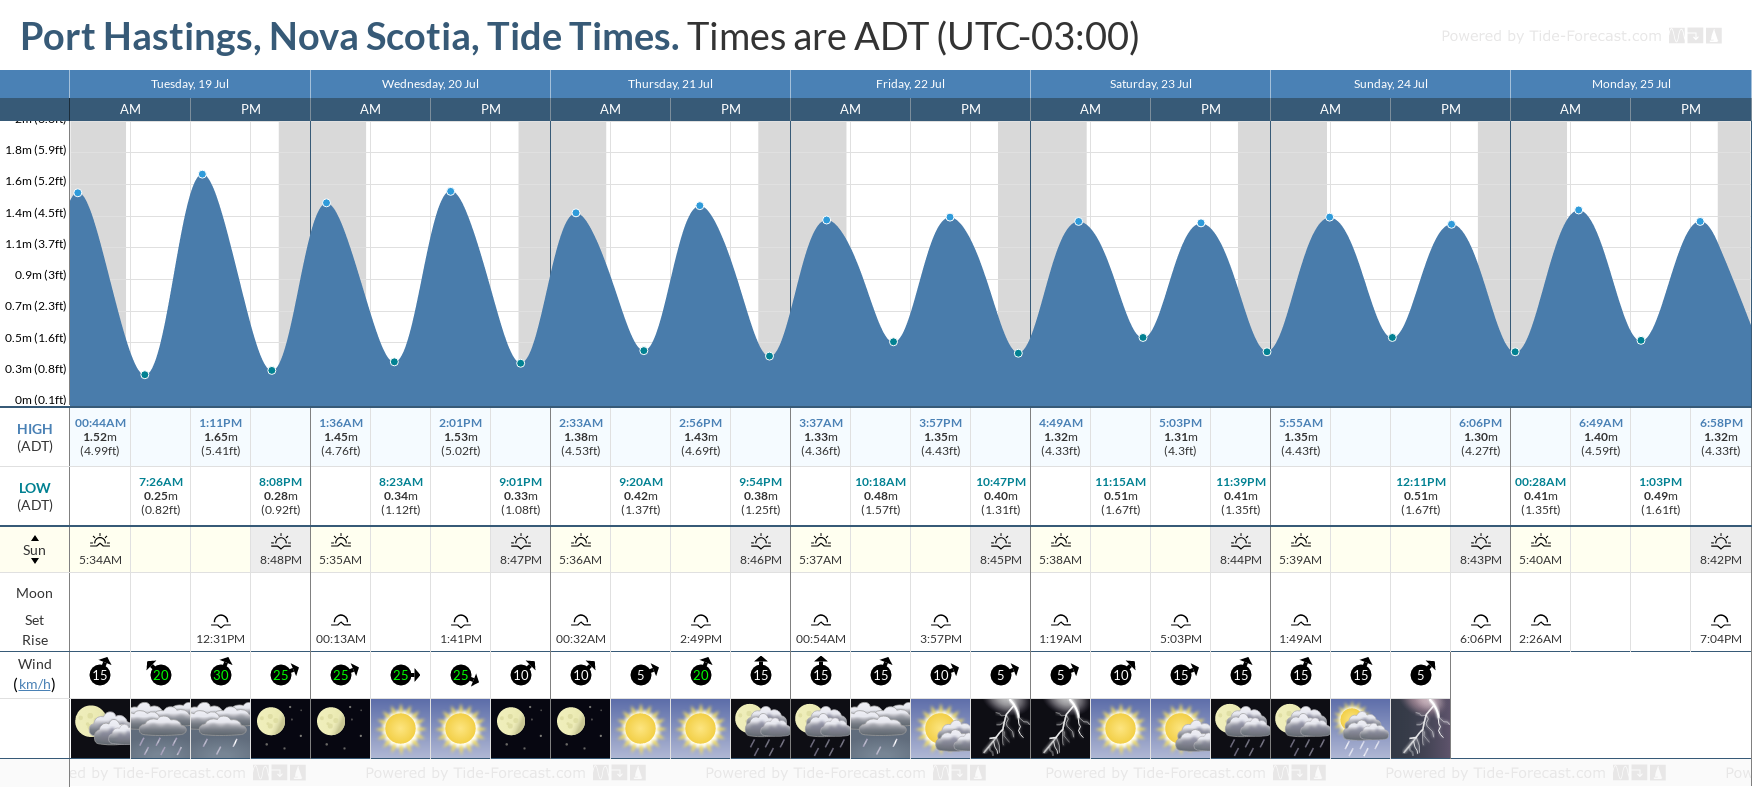 Port Hastings, Nova Scotia Tide Chart including high and low tide tide times for the next 7 days